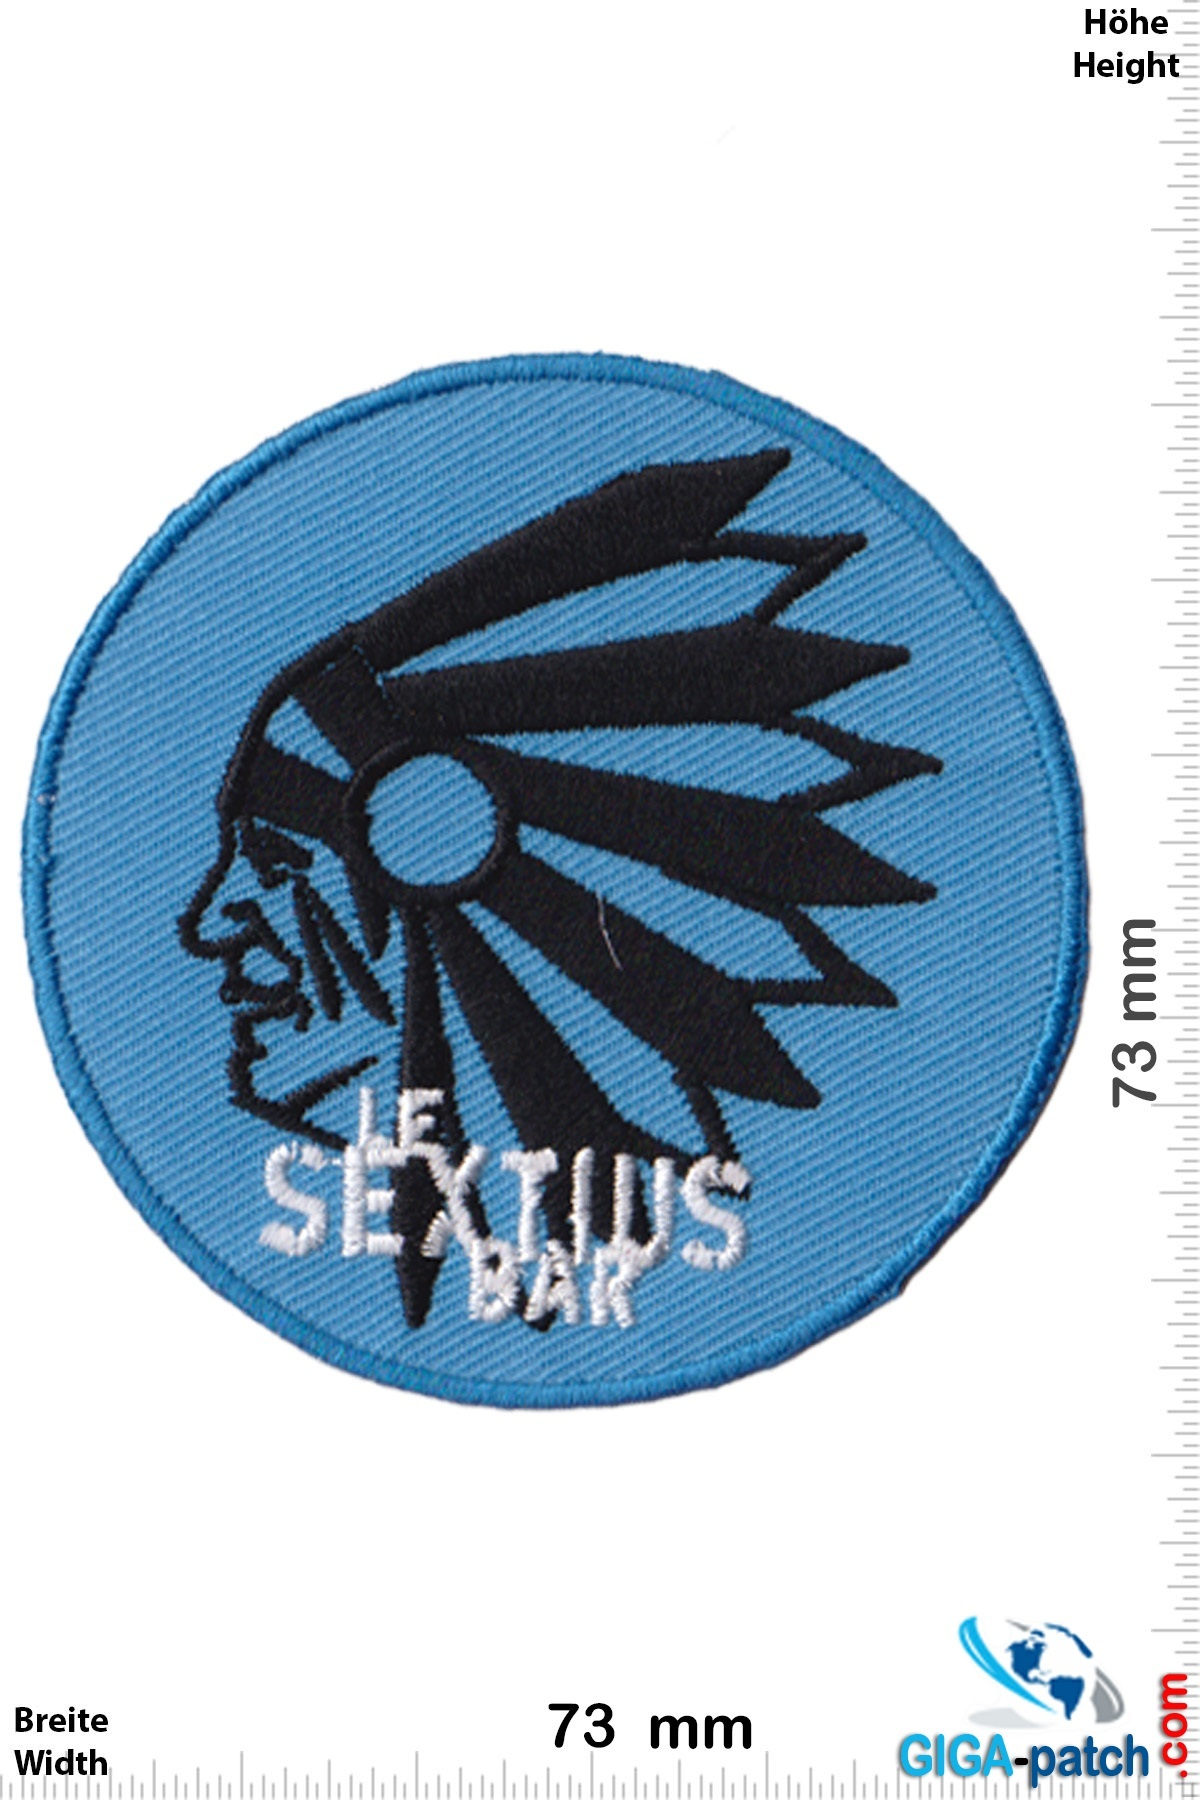 Le Sextius Bar Le Sextius Bar Patch Back Patches